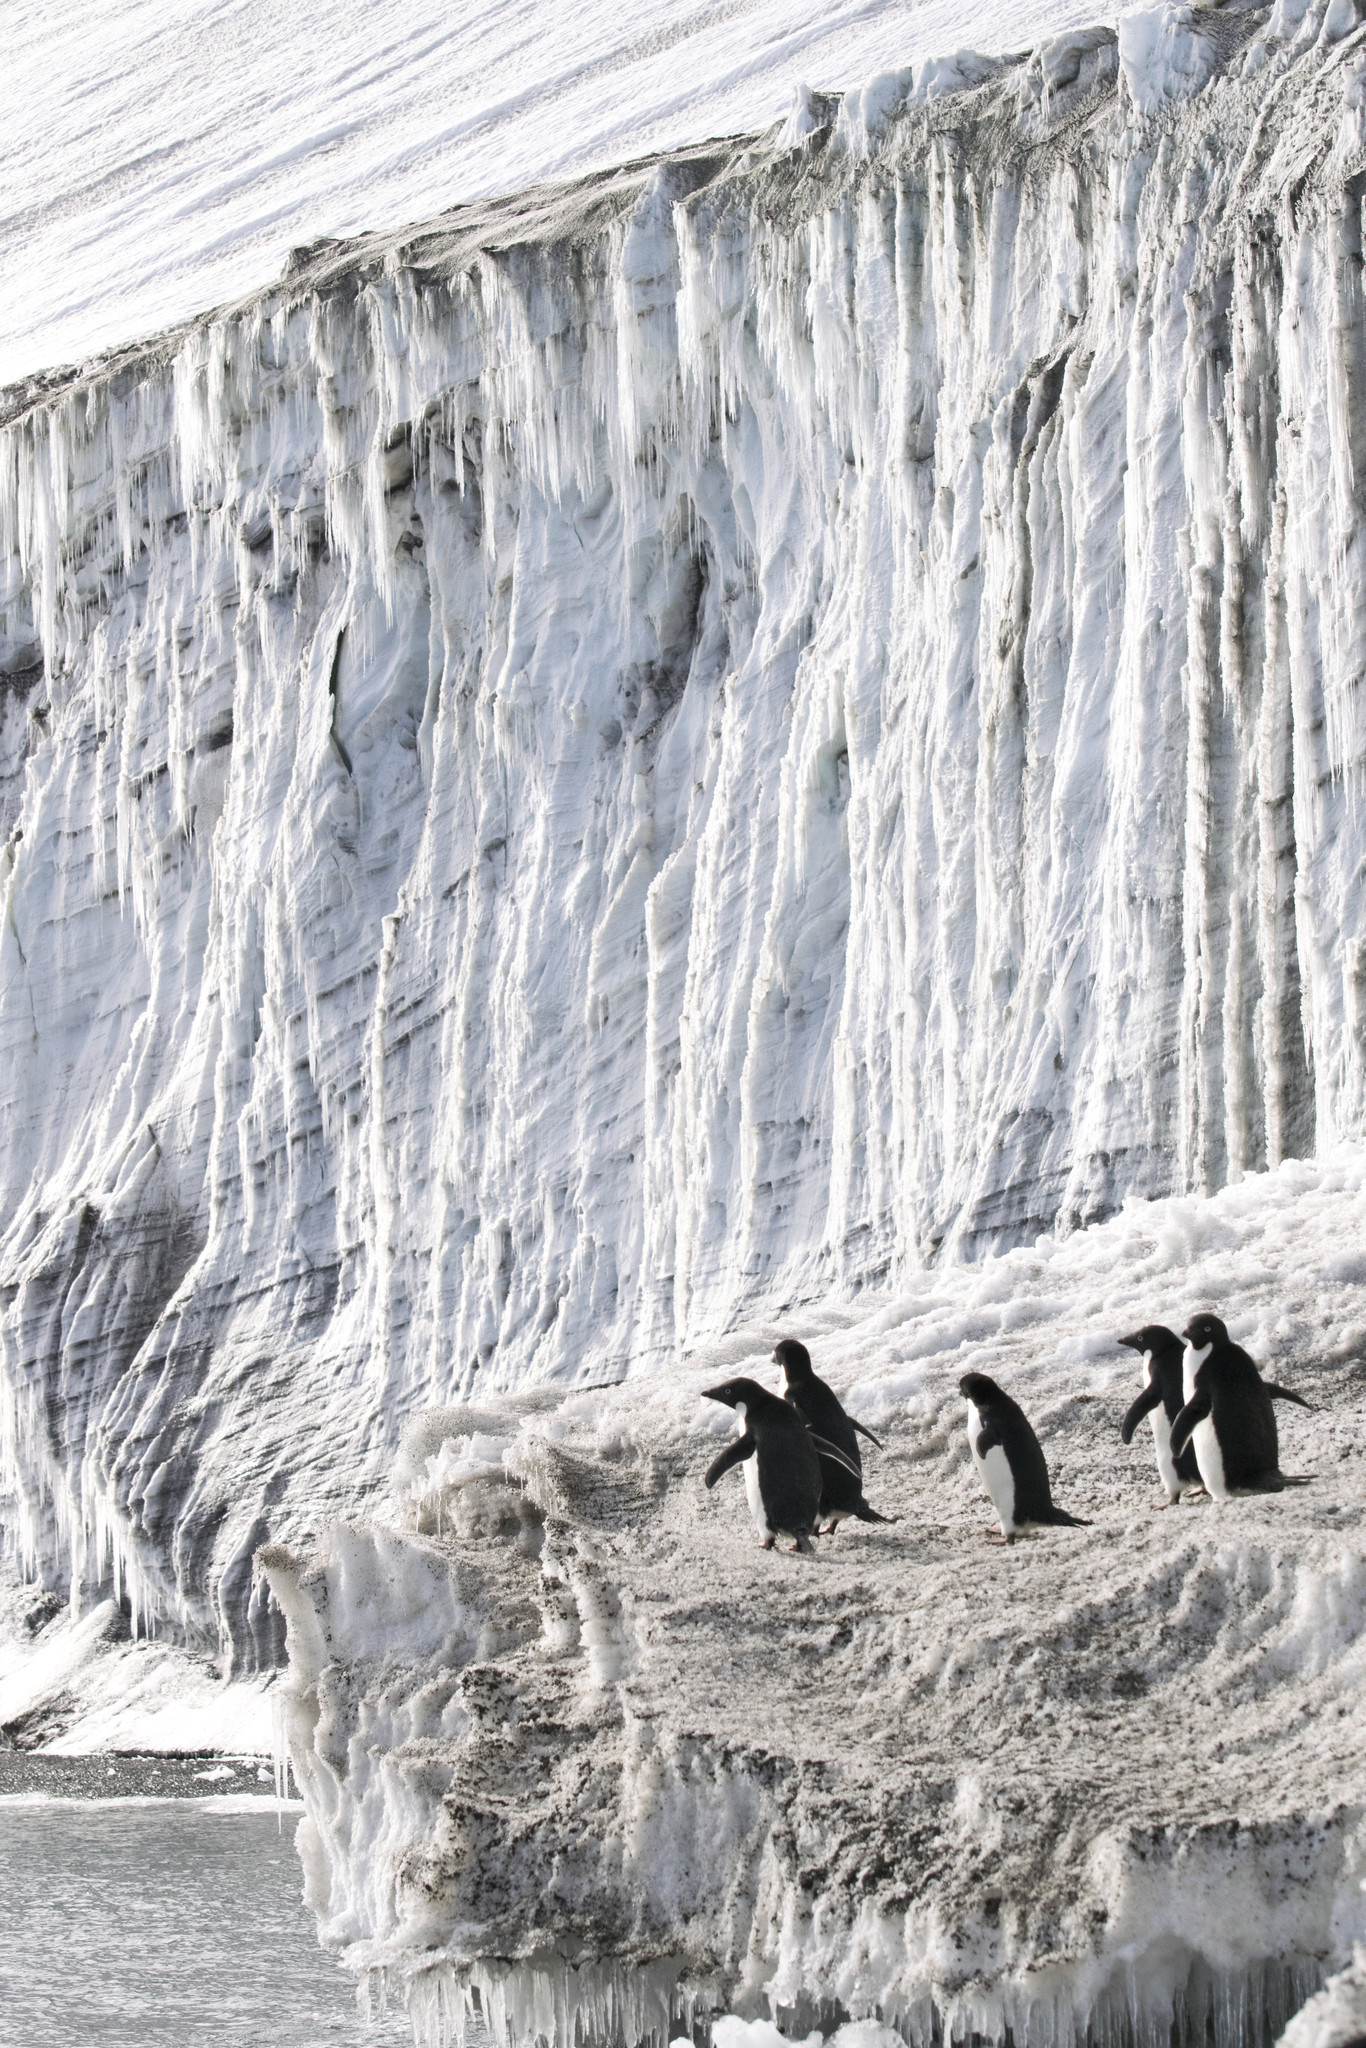 An amazing view of Antarctica wildlife and scenery.